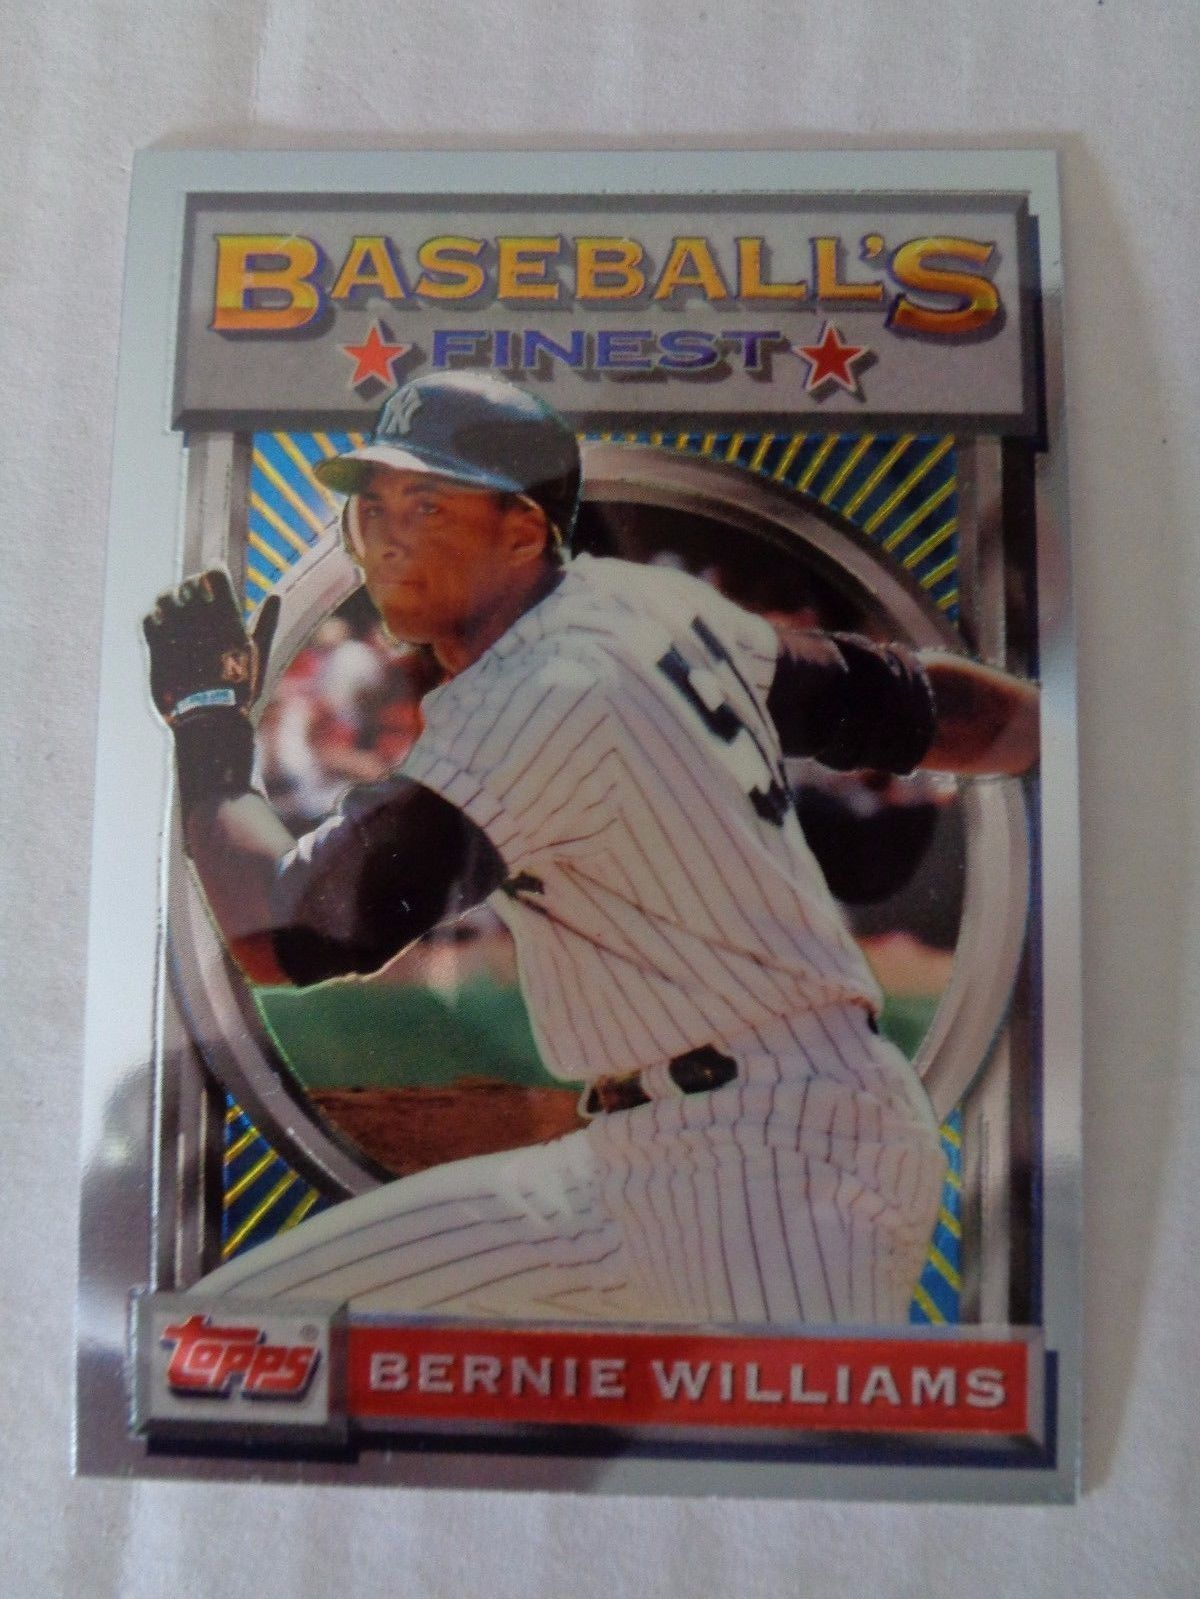 Bernie Williams 1993 Topps Finest Baseball Card #30 NY Yankees NM/M Condition